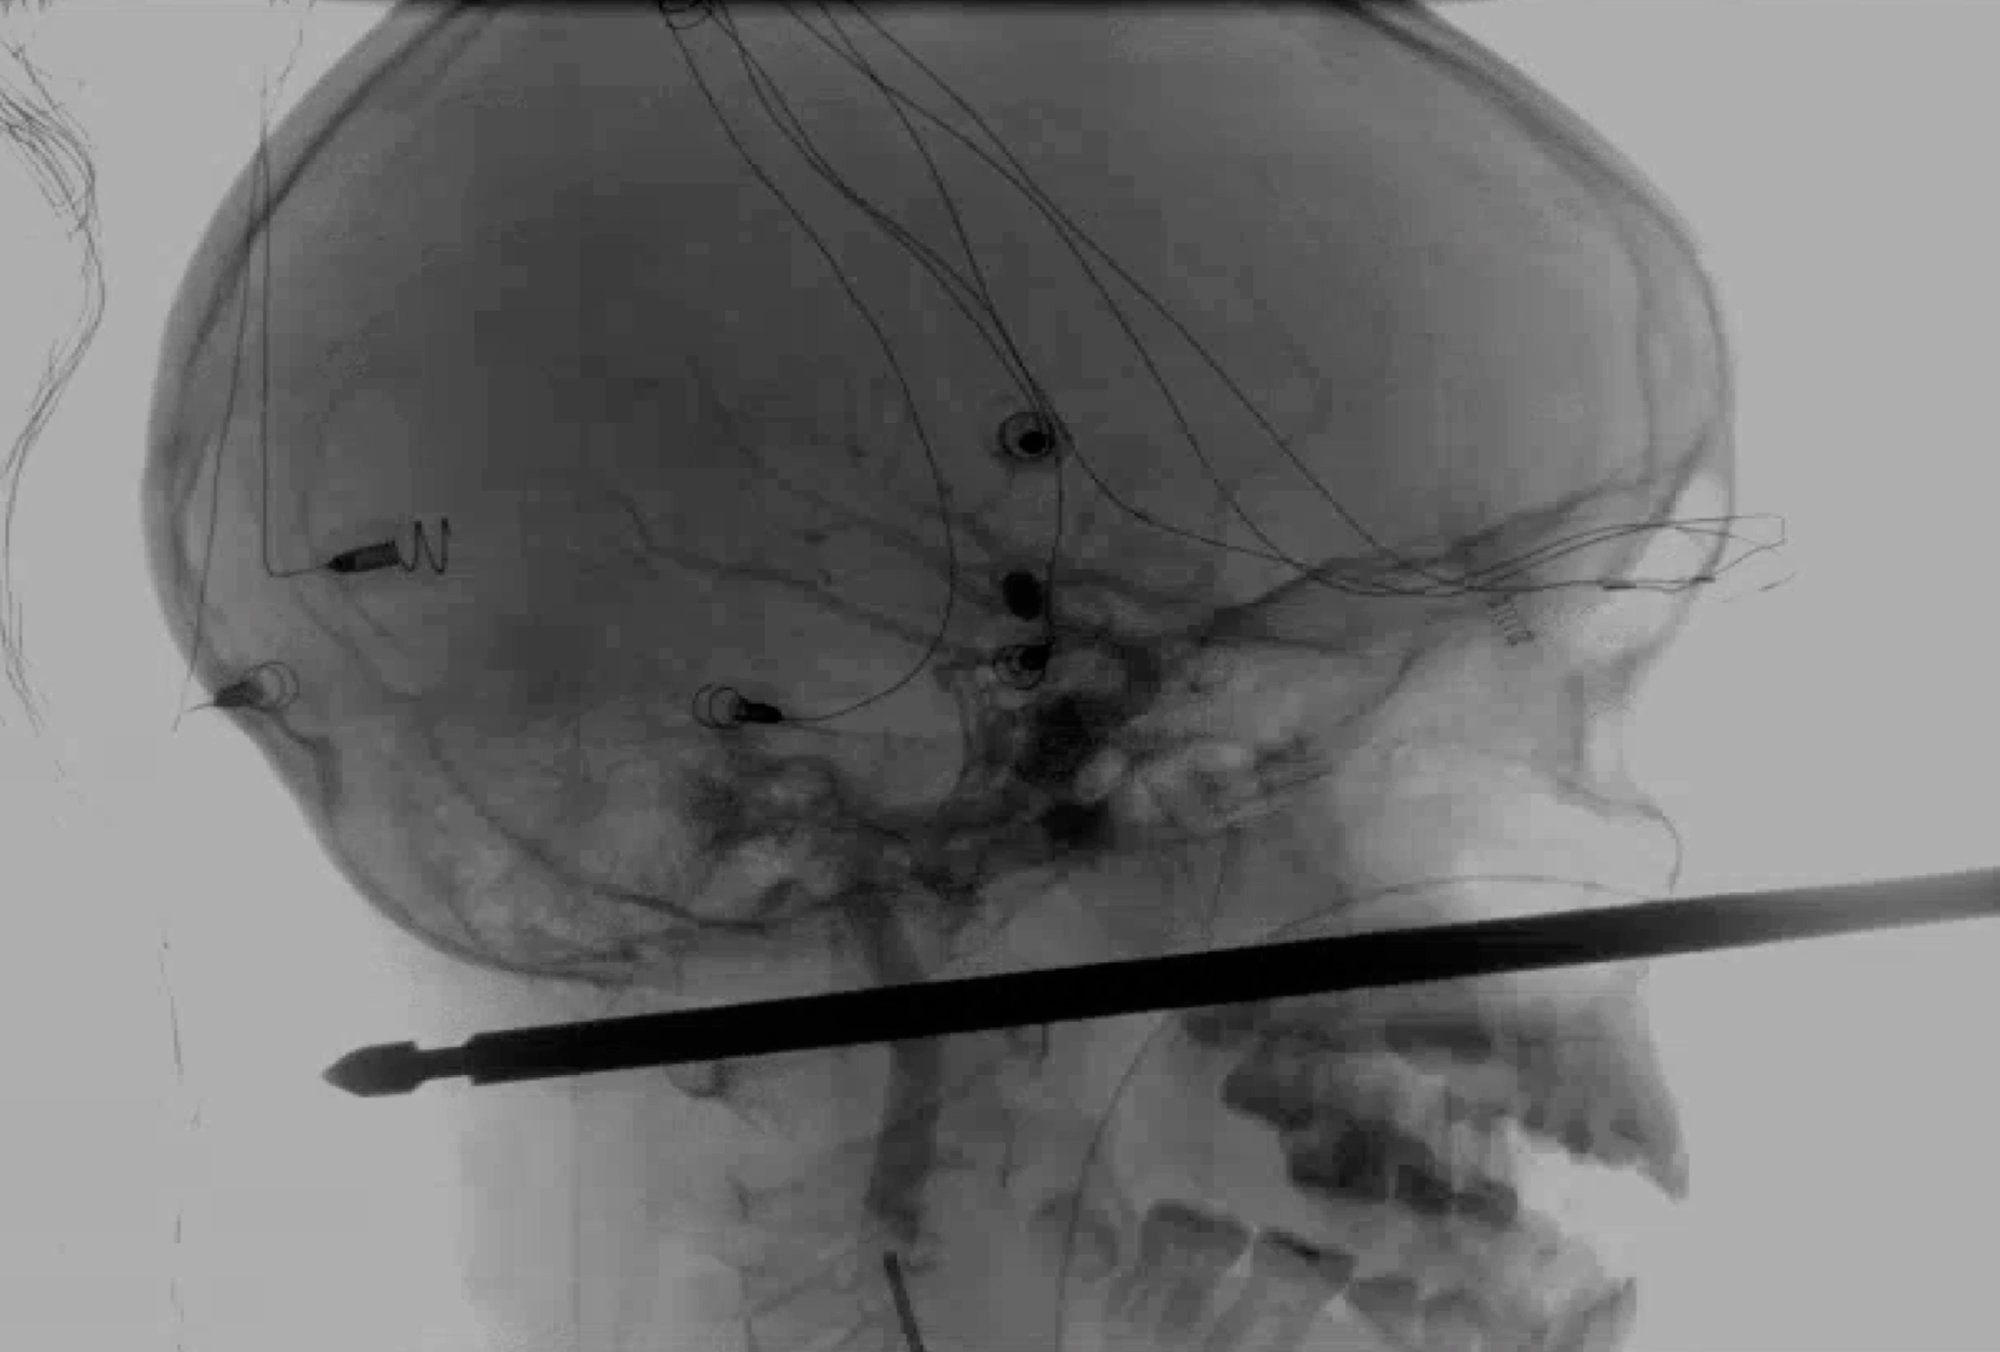 'Miraculous': Missouri boy survives after meat skewer pierces skull